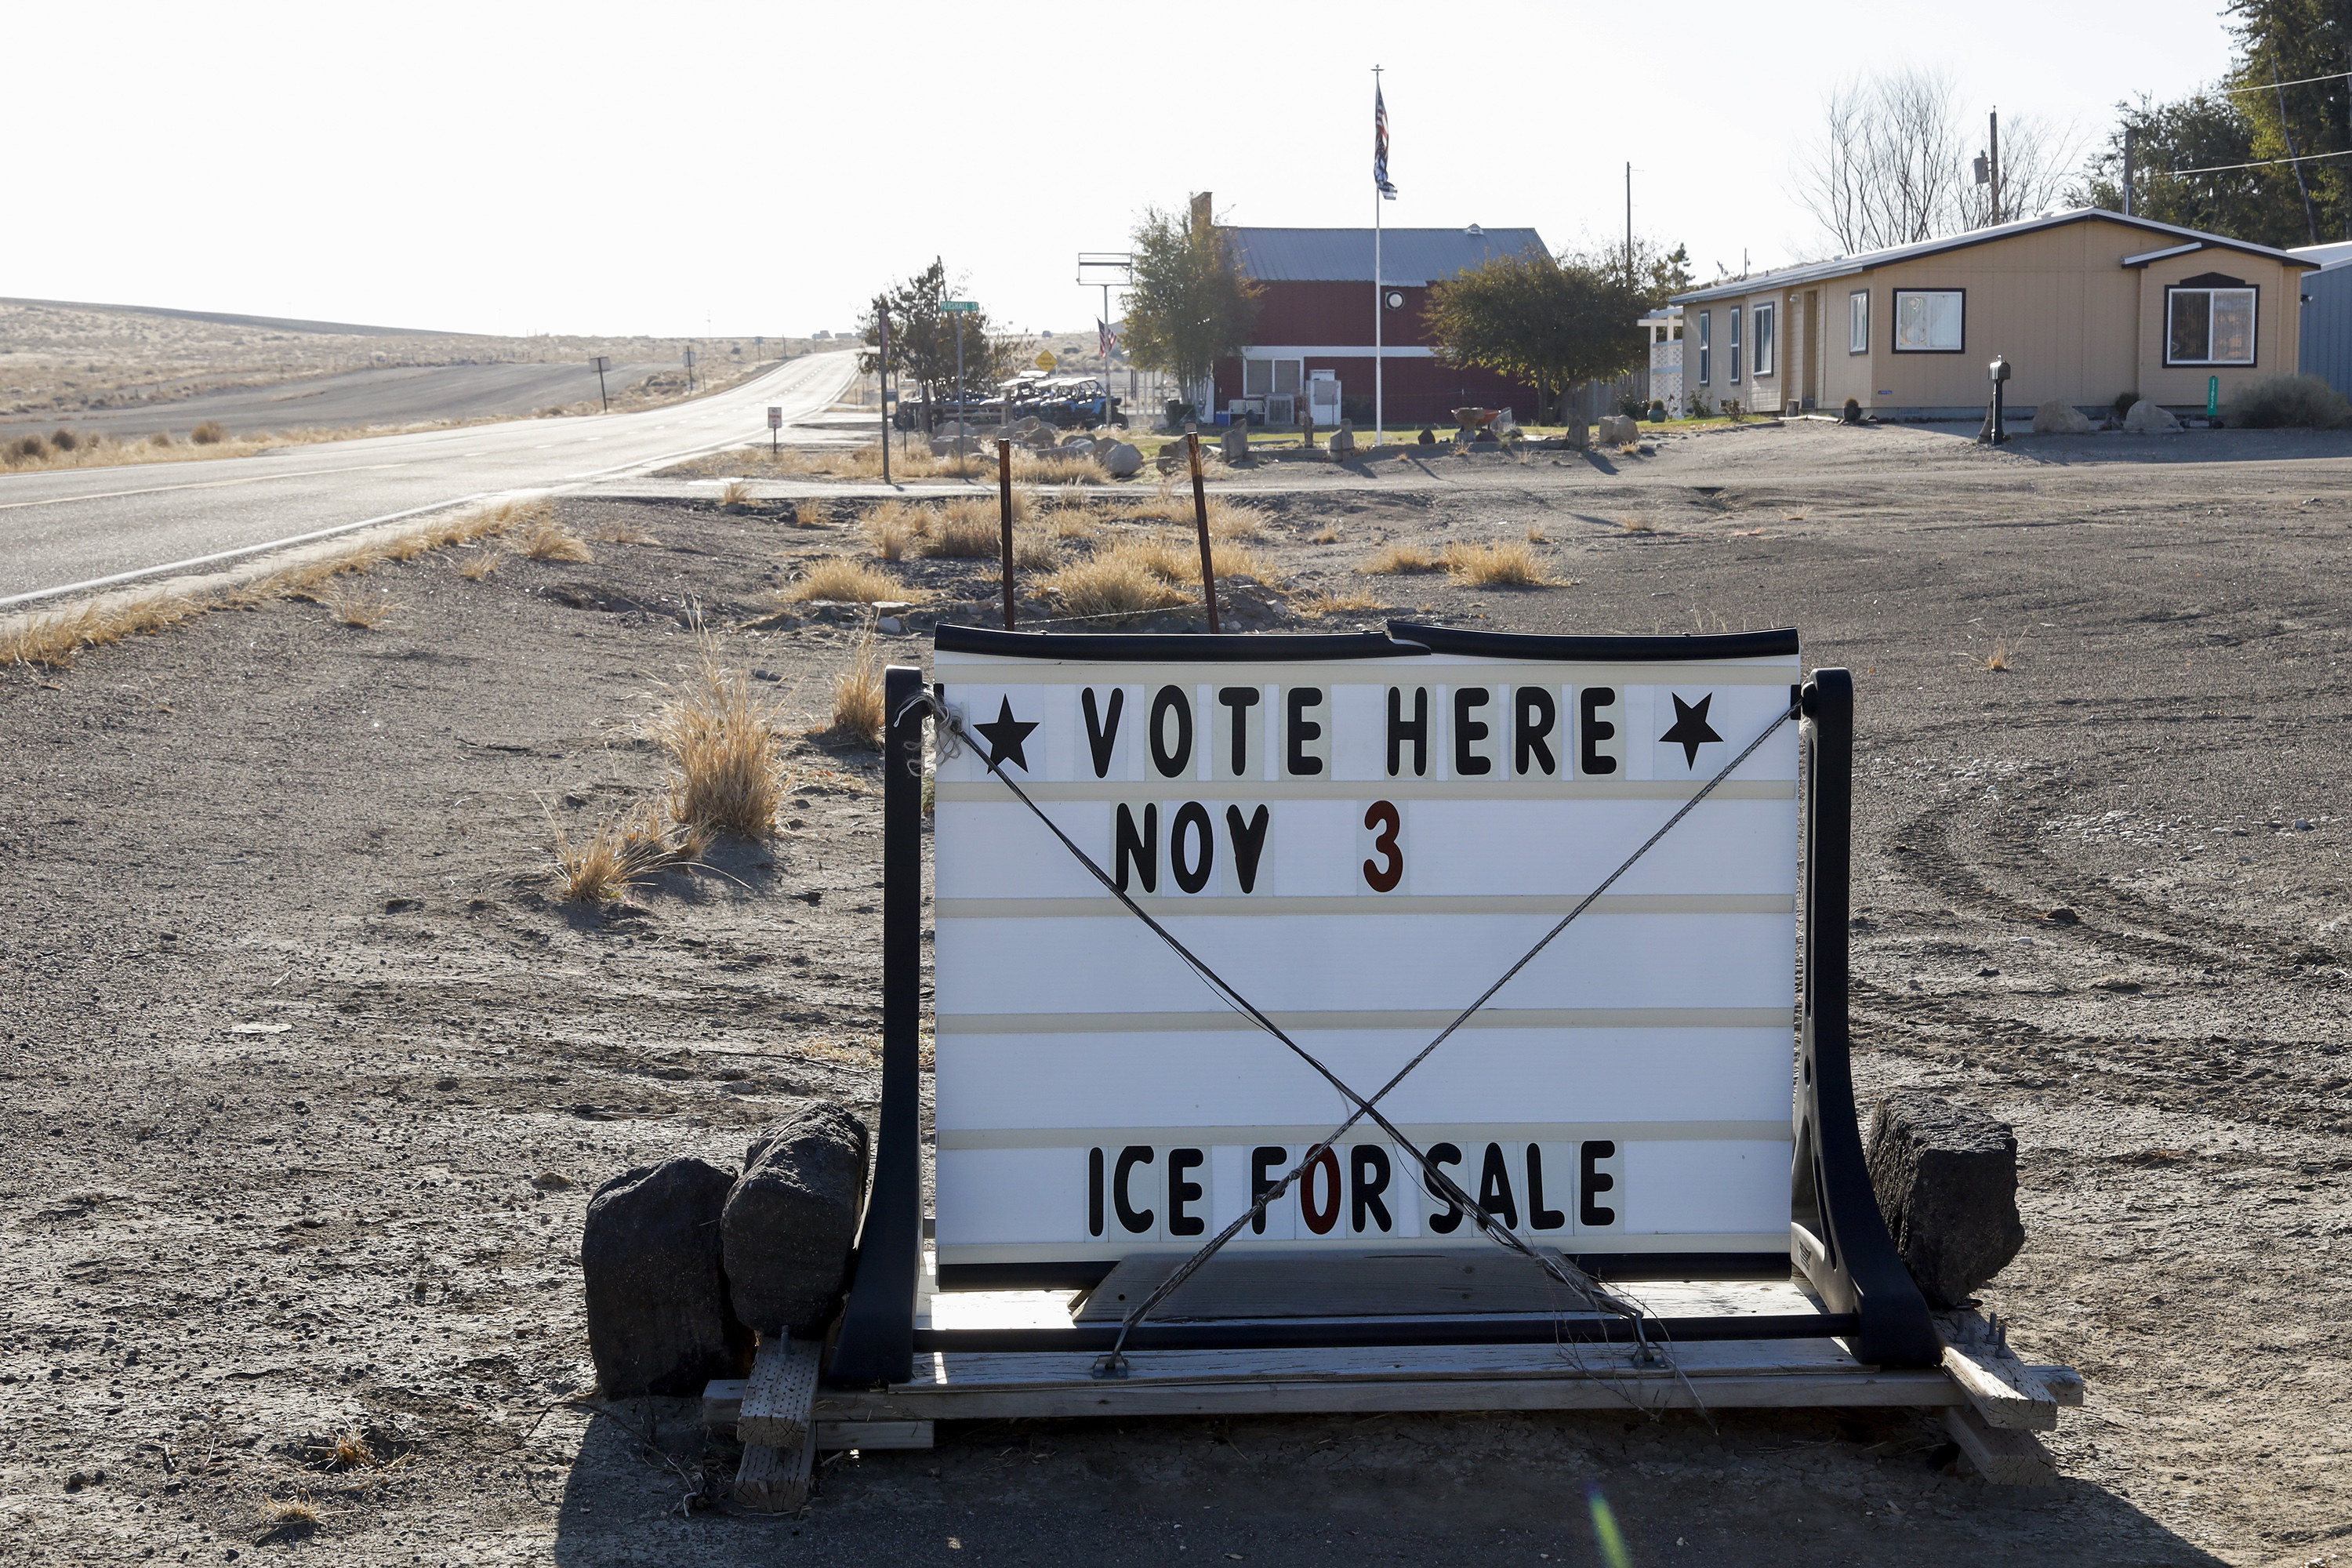 A sign advertising voting on the side of a dusty road.